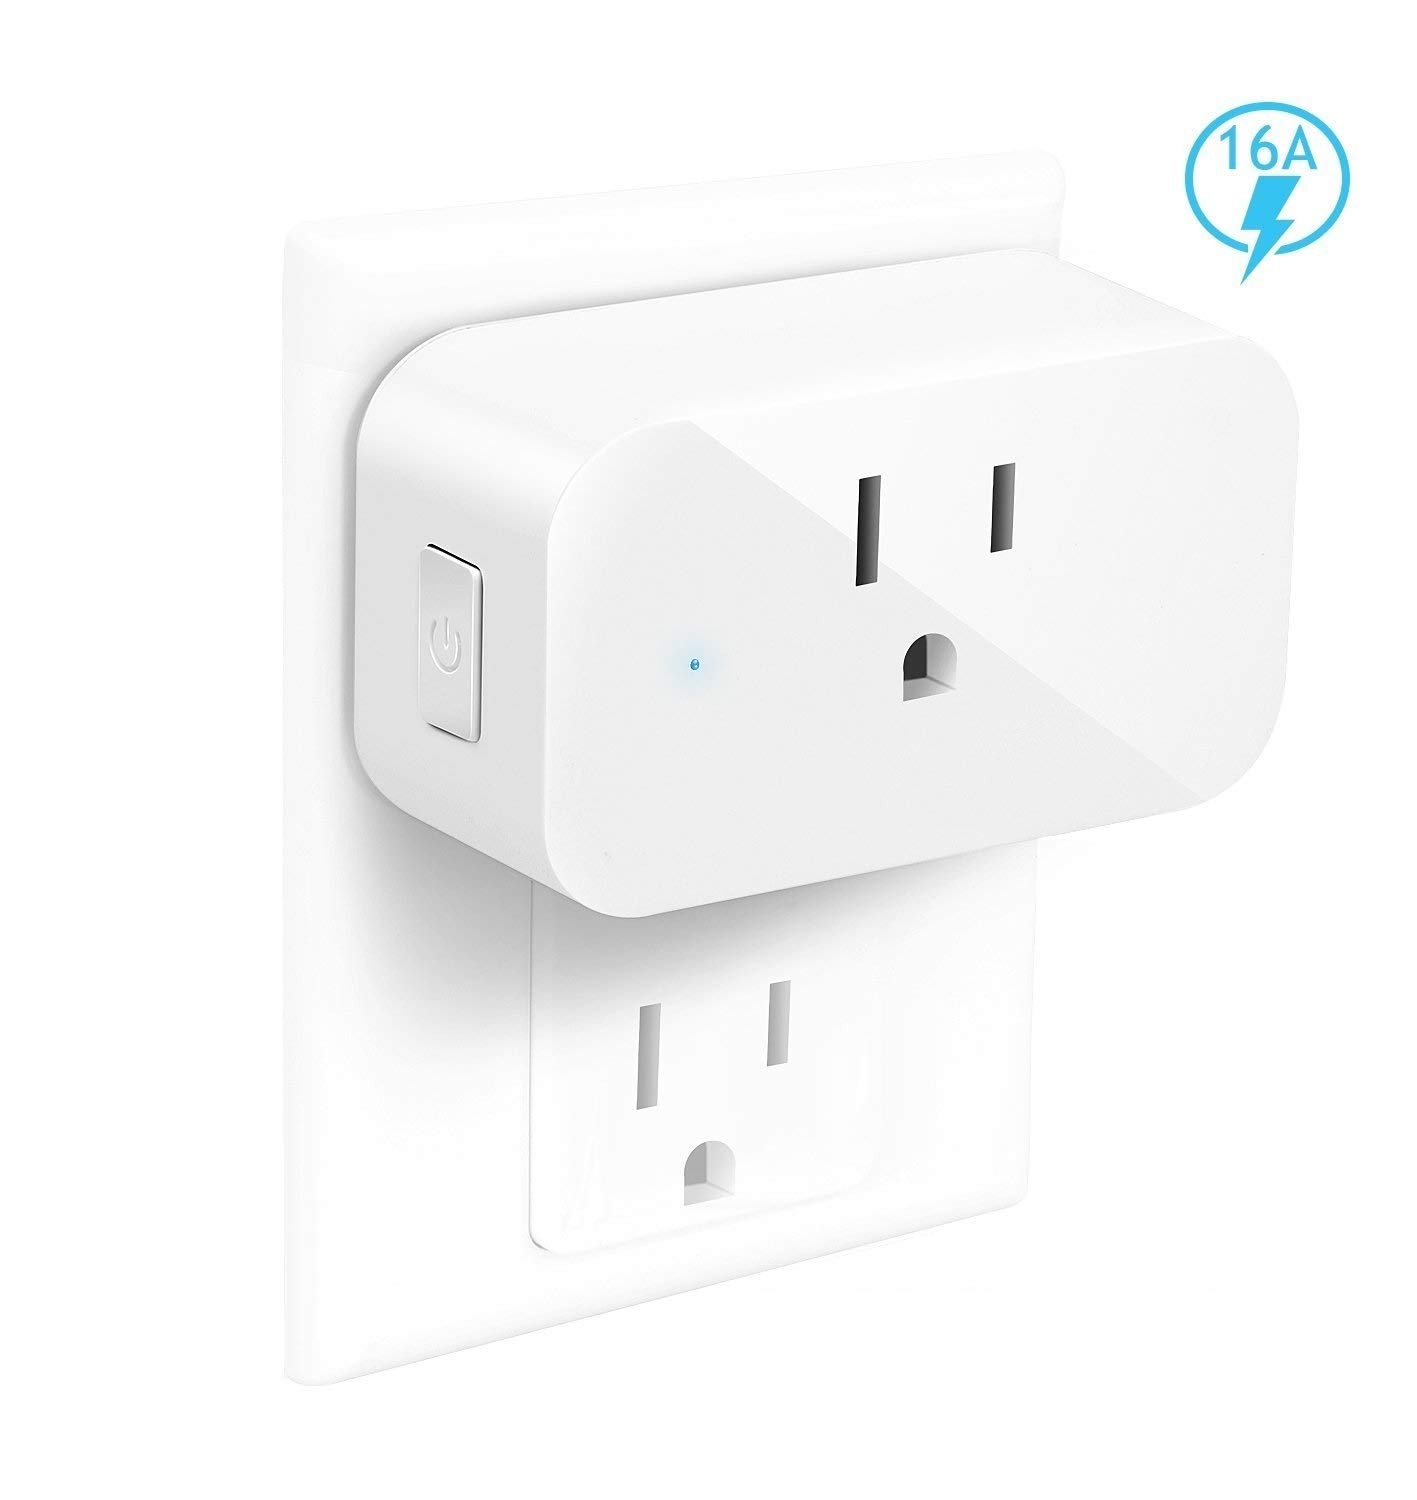 IoTeck Smart Wi-Fi Plug Compatible With Alexa, Echo, Google Home, IFTTT, and Smart Life, Mini Smart Socket with Timer Function, No Hub Required